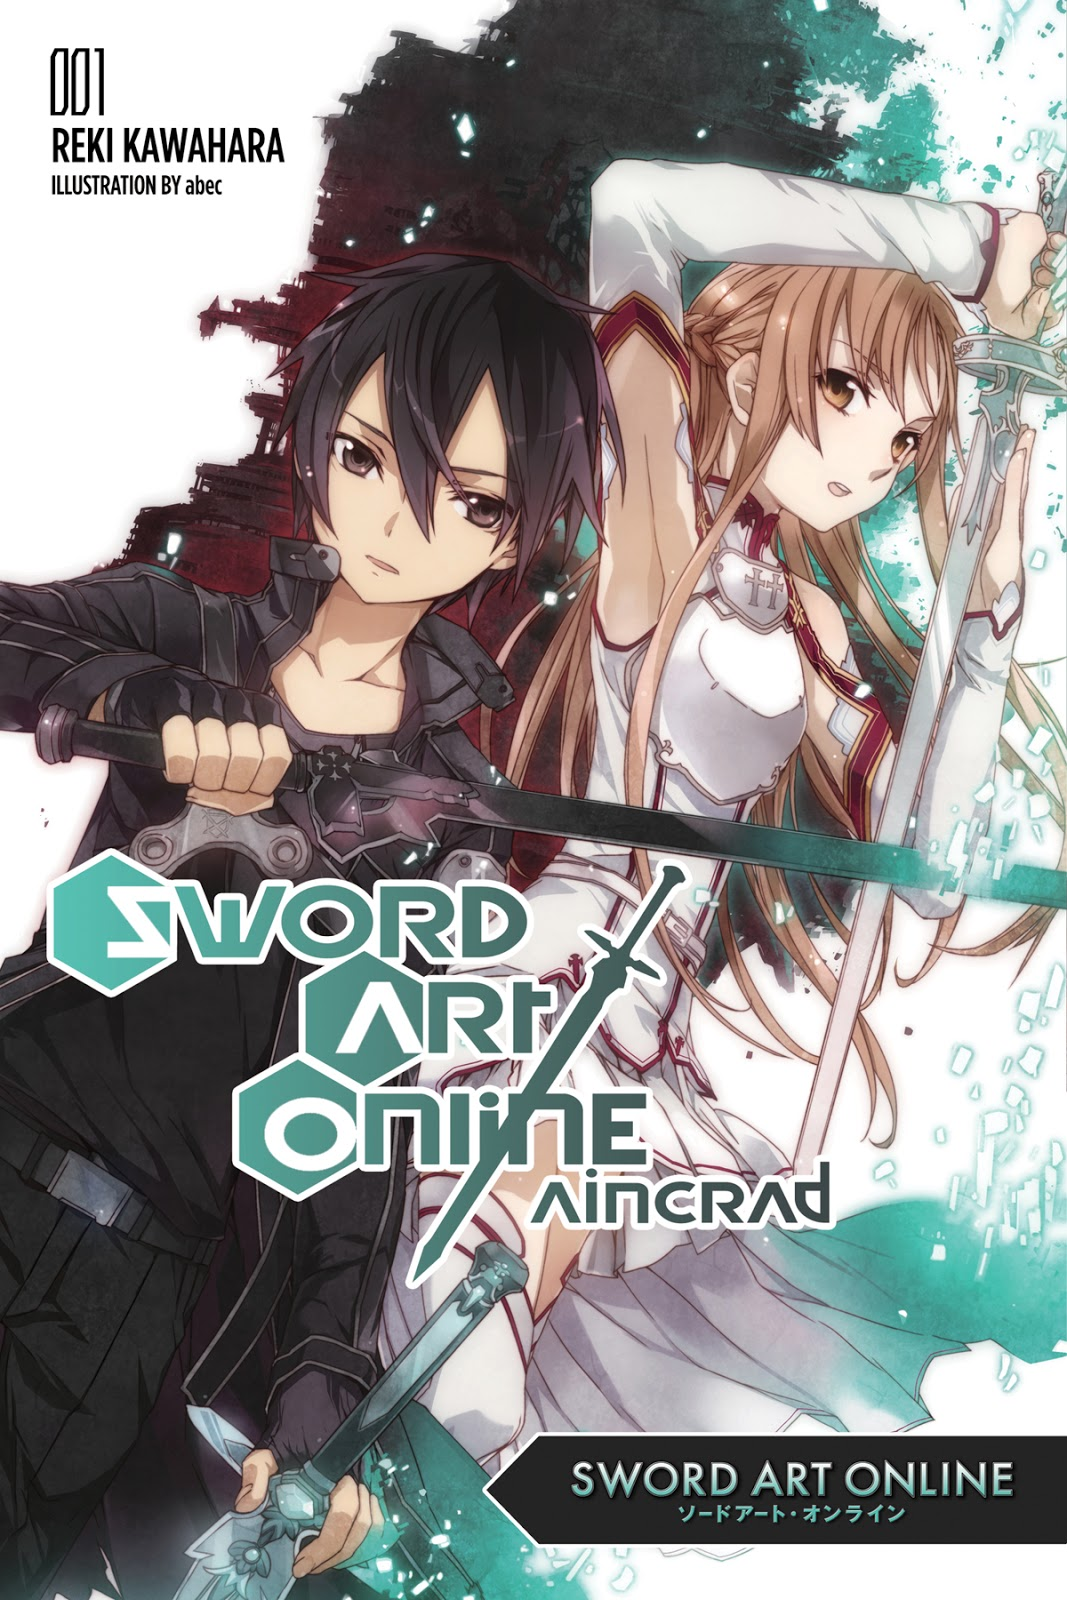 Download Sword Art Online Light Novels [EPUB]